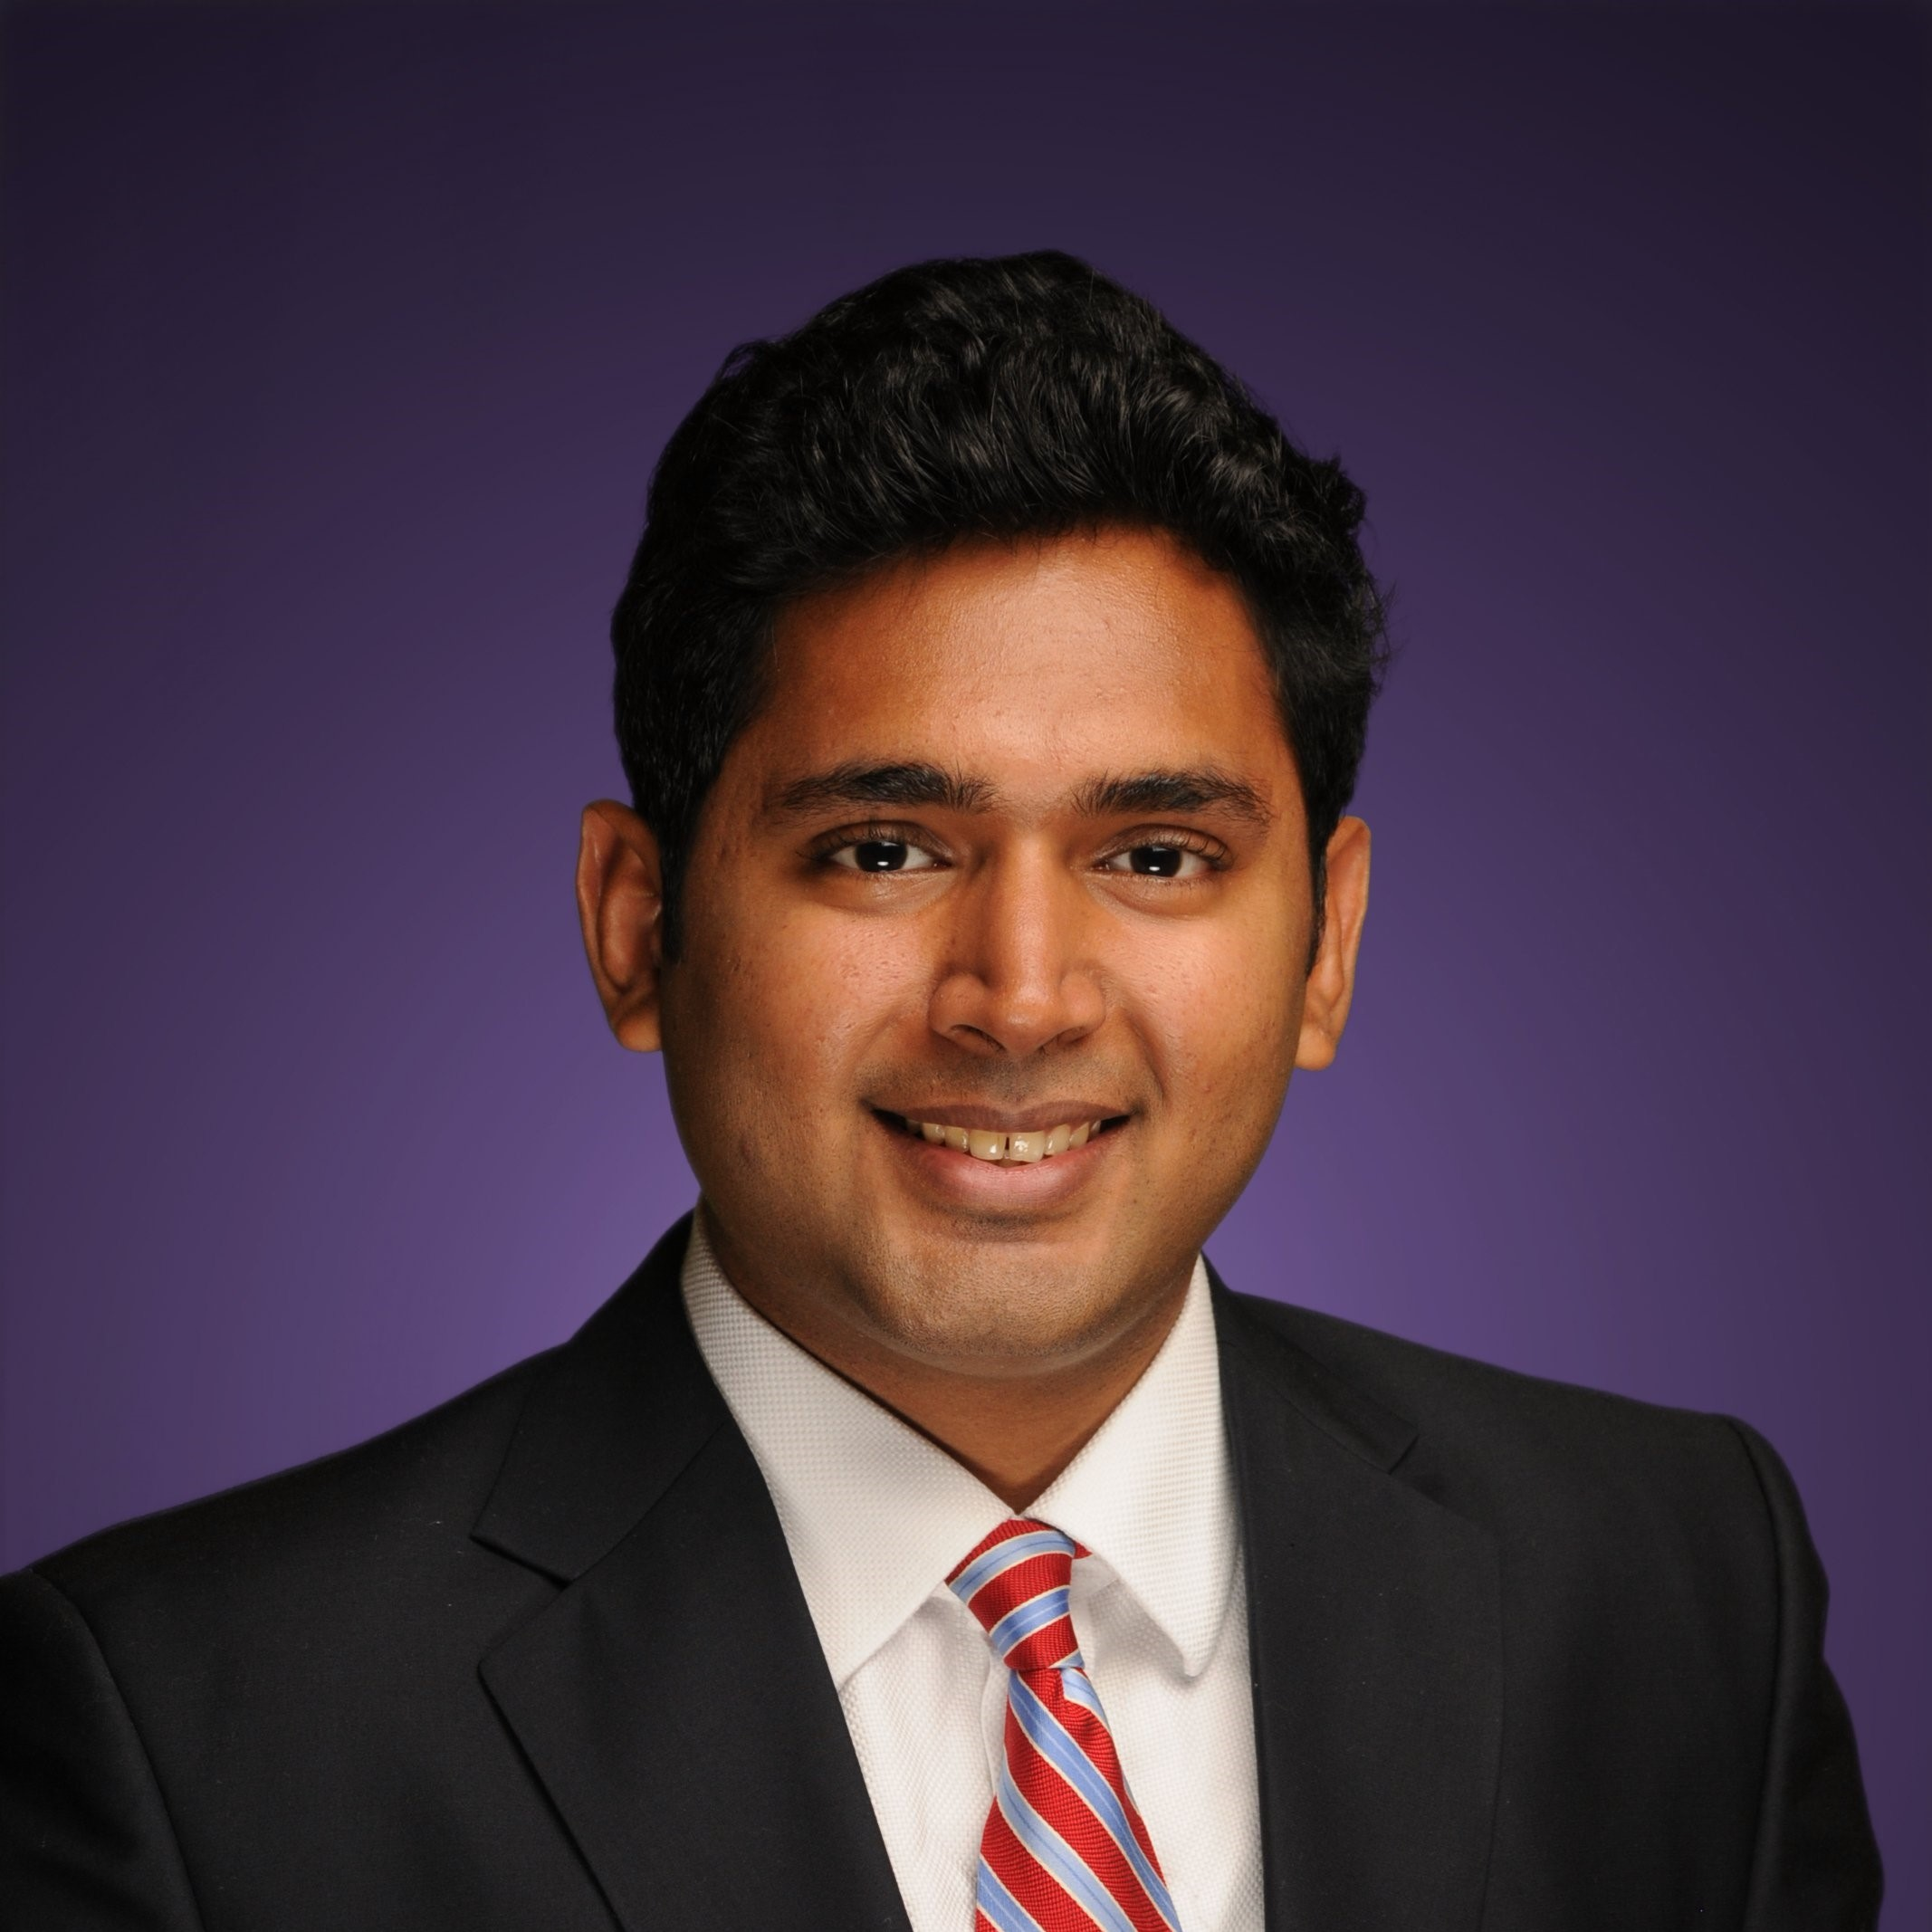 Aditya Gupta - AAdi grew up in Mumbai, India and received his B.A. from U.C. Berkeley with majors in Applied Mathematics and Economics. After graduating, he moved to New York City to work at a management consulting firm specialized in the financial services sector. In addition to SGOV, he serves on the board of the Graduate Finance Association. He enjoys playing and watching sports, exploring restaurants and bars in NYC, and attending music festivals.